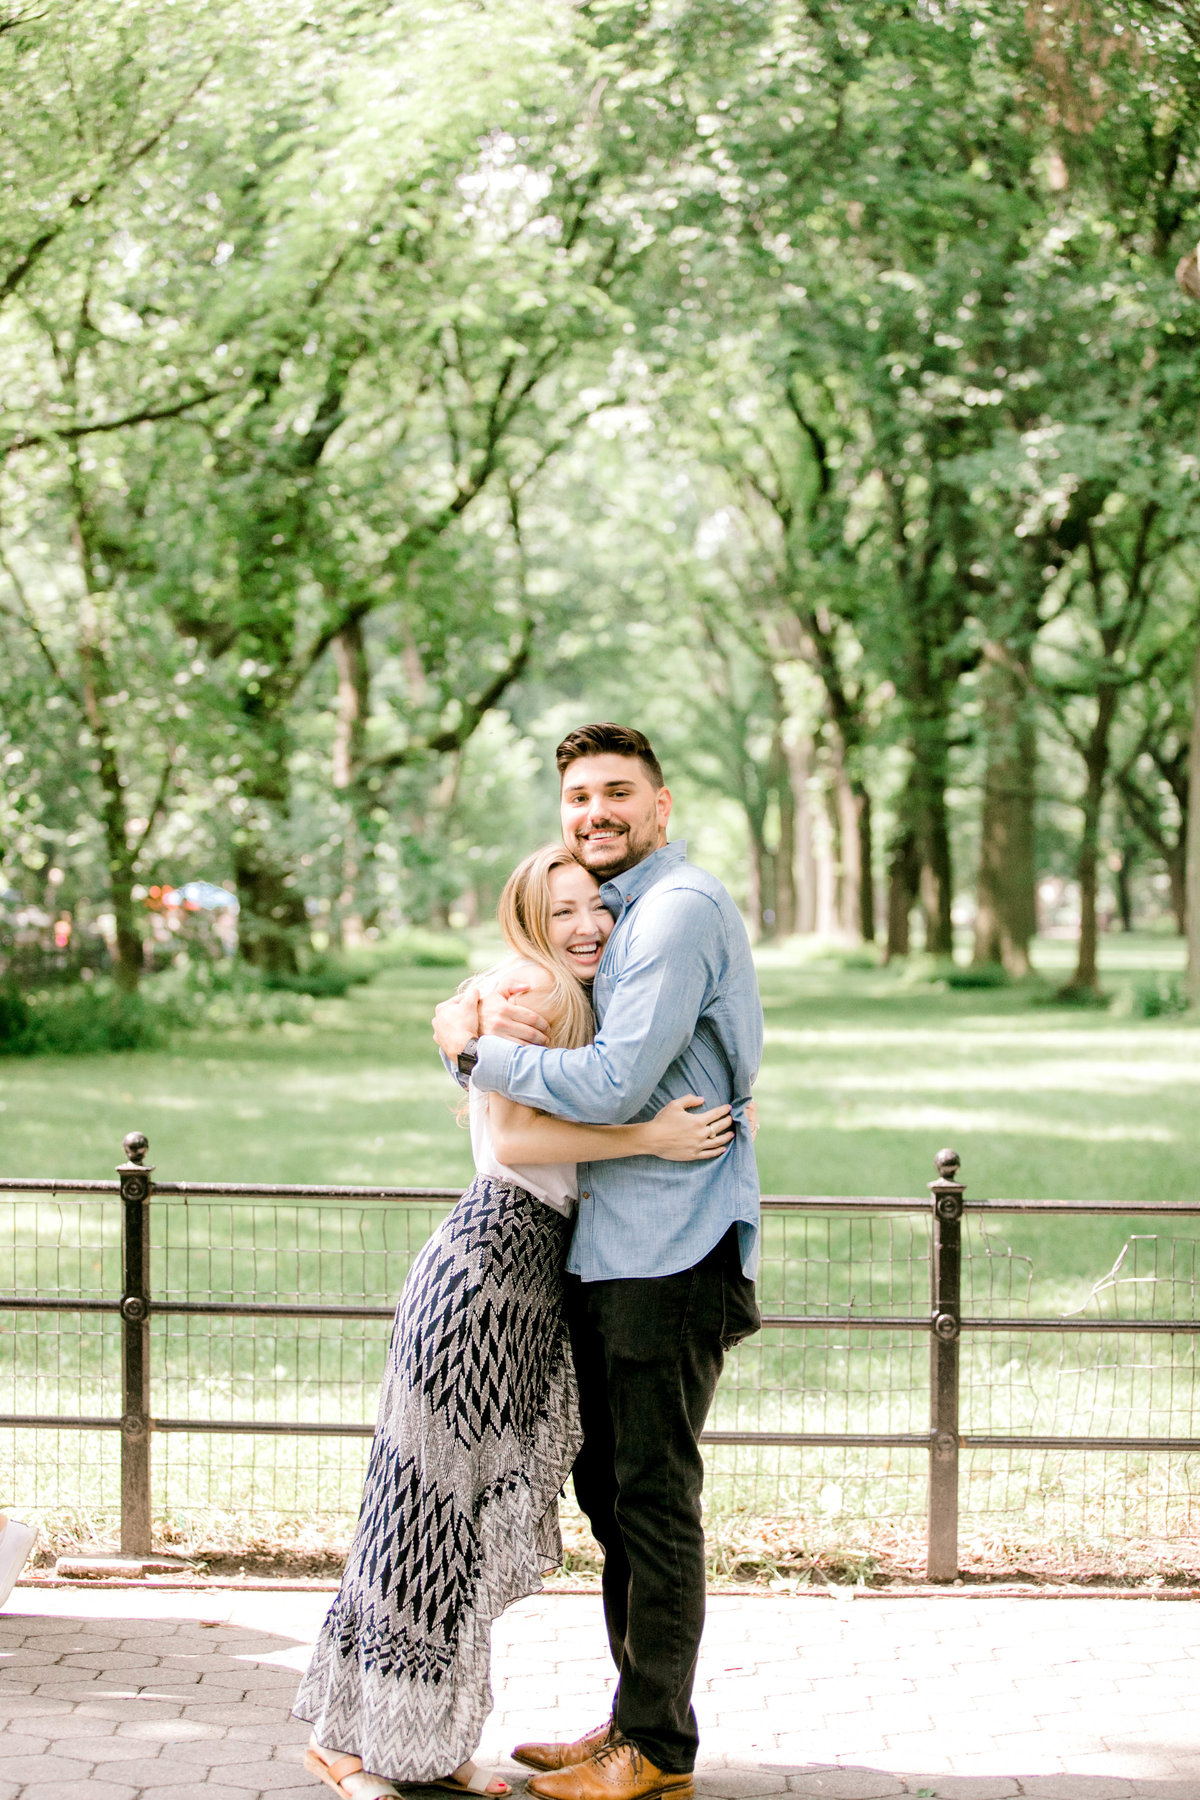 Melanie Foster Photography - Norman Oklahoma Senior and Engagement Photographer - Couple Engagement Photo - 48